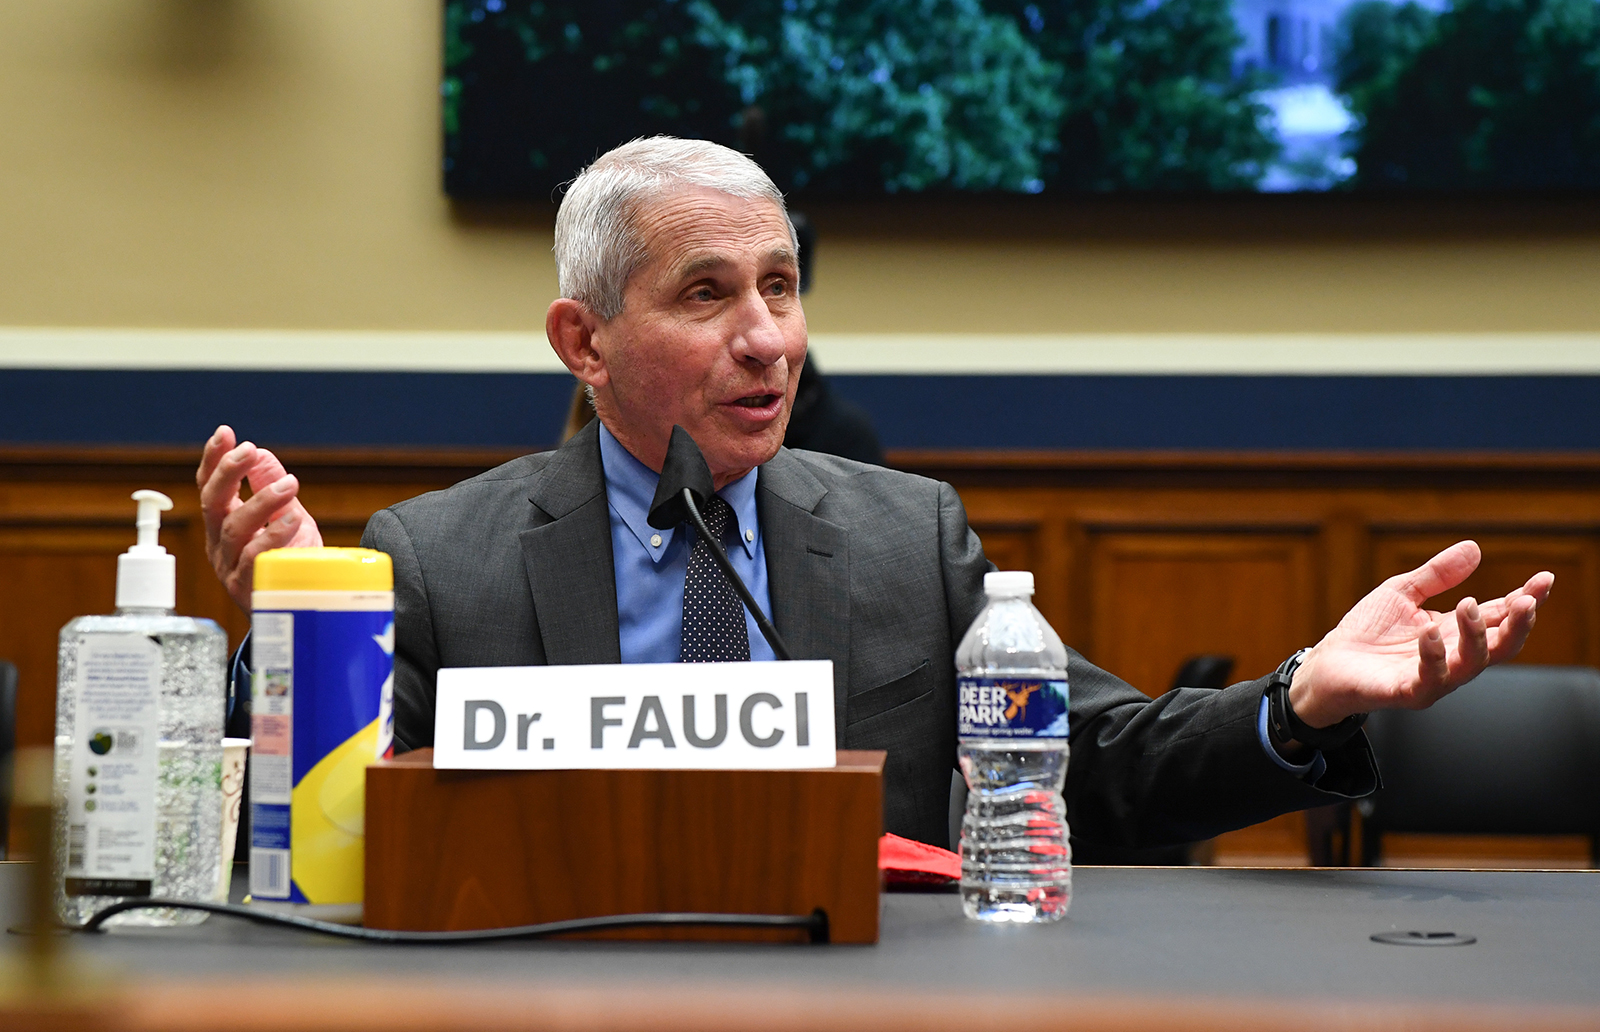 Dr. Anthony Fauci testifies during a House Energy and Commerce Committee hearing on the Trump administration's Response to the pandemic, on Capitol Hill in Washington, DC, on June 23.